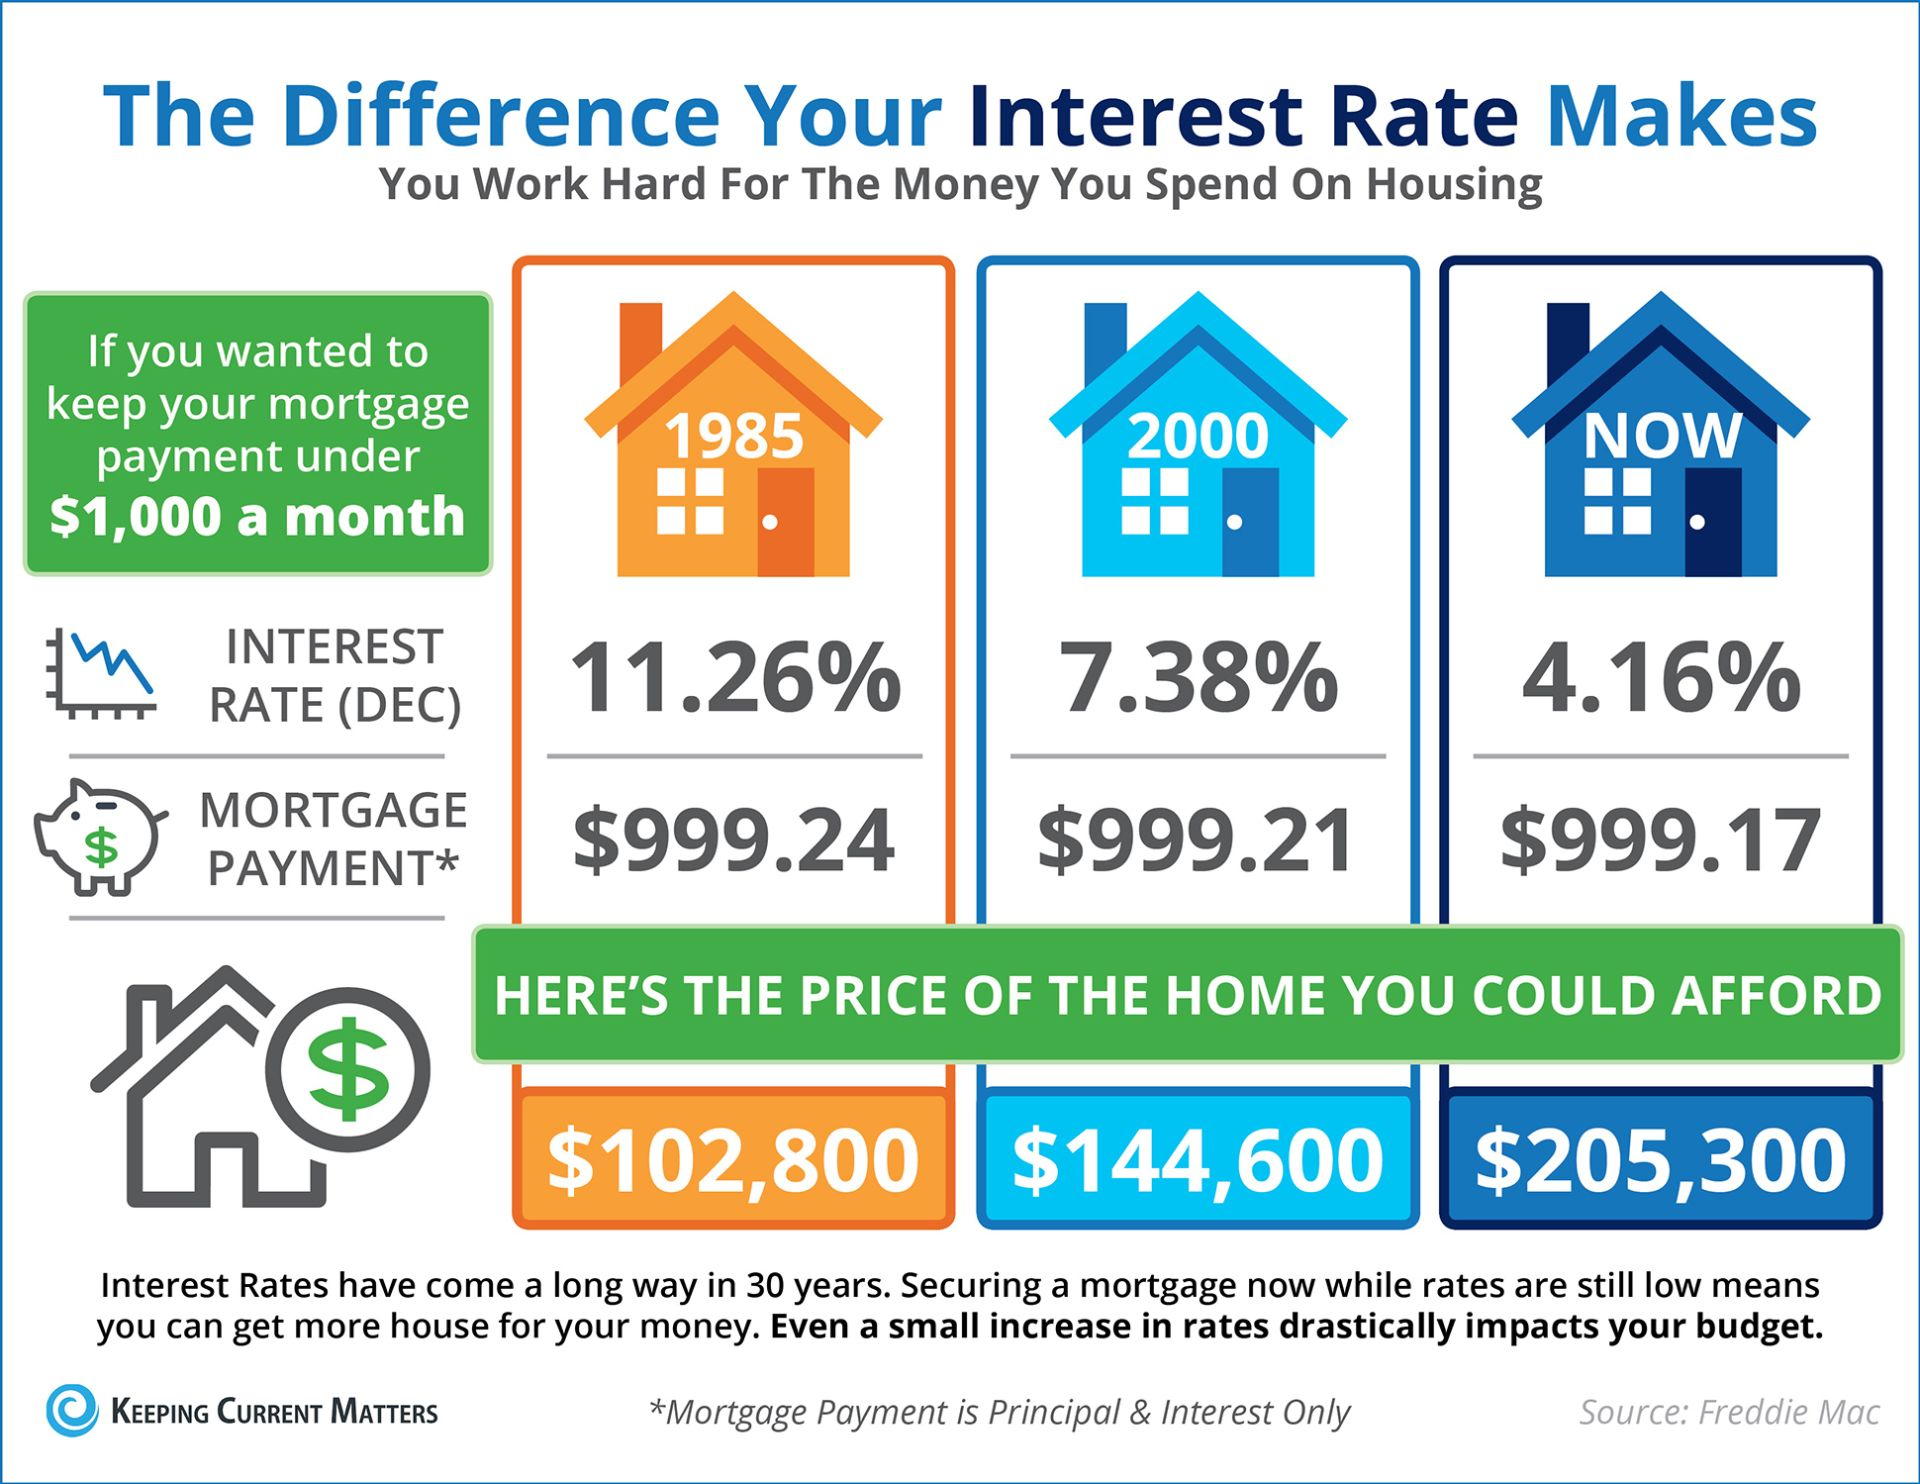 How much home can you purchase with today's interest rate